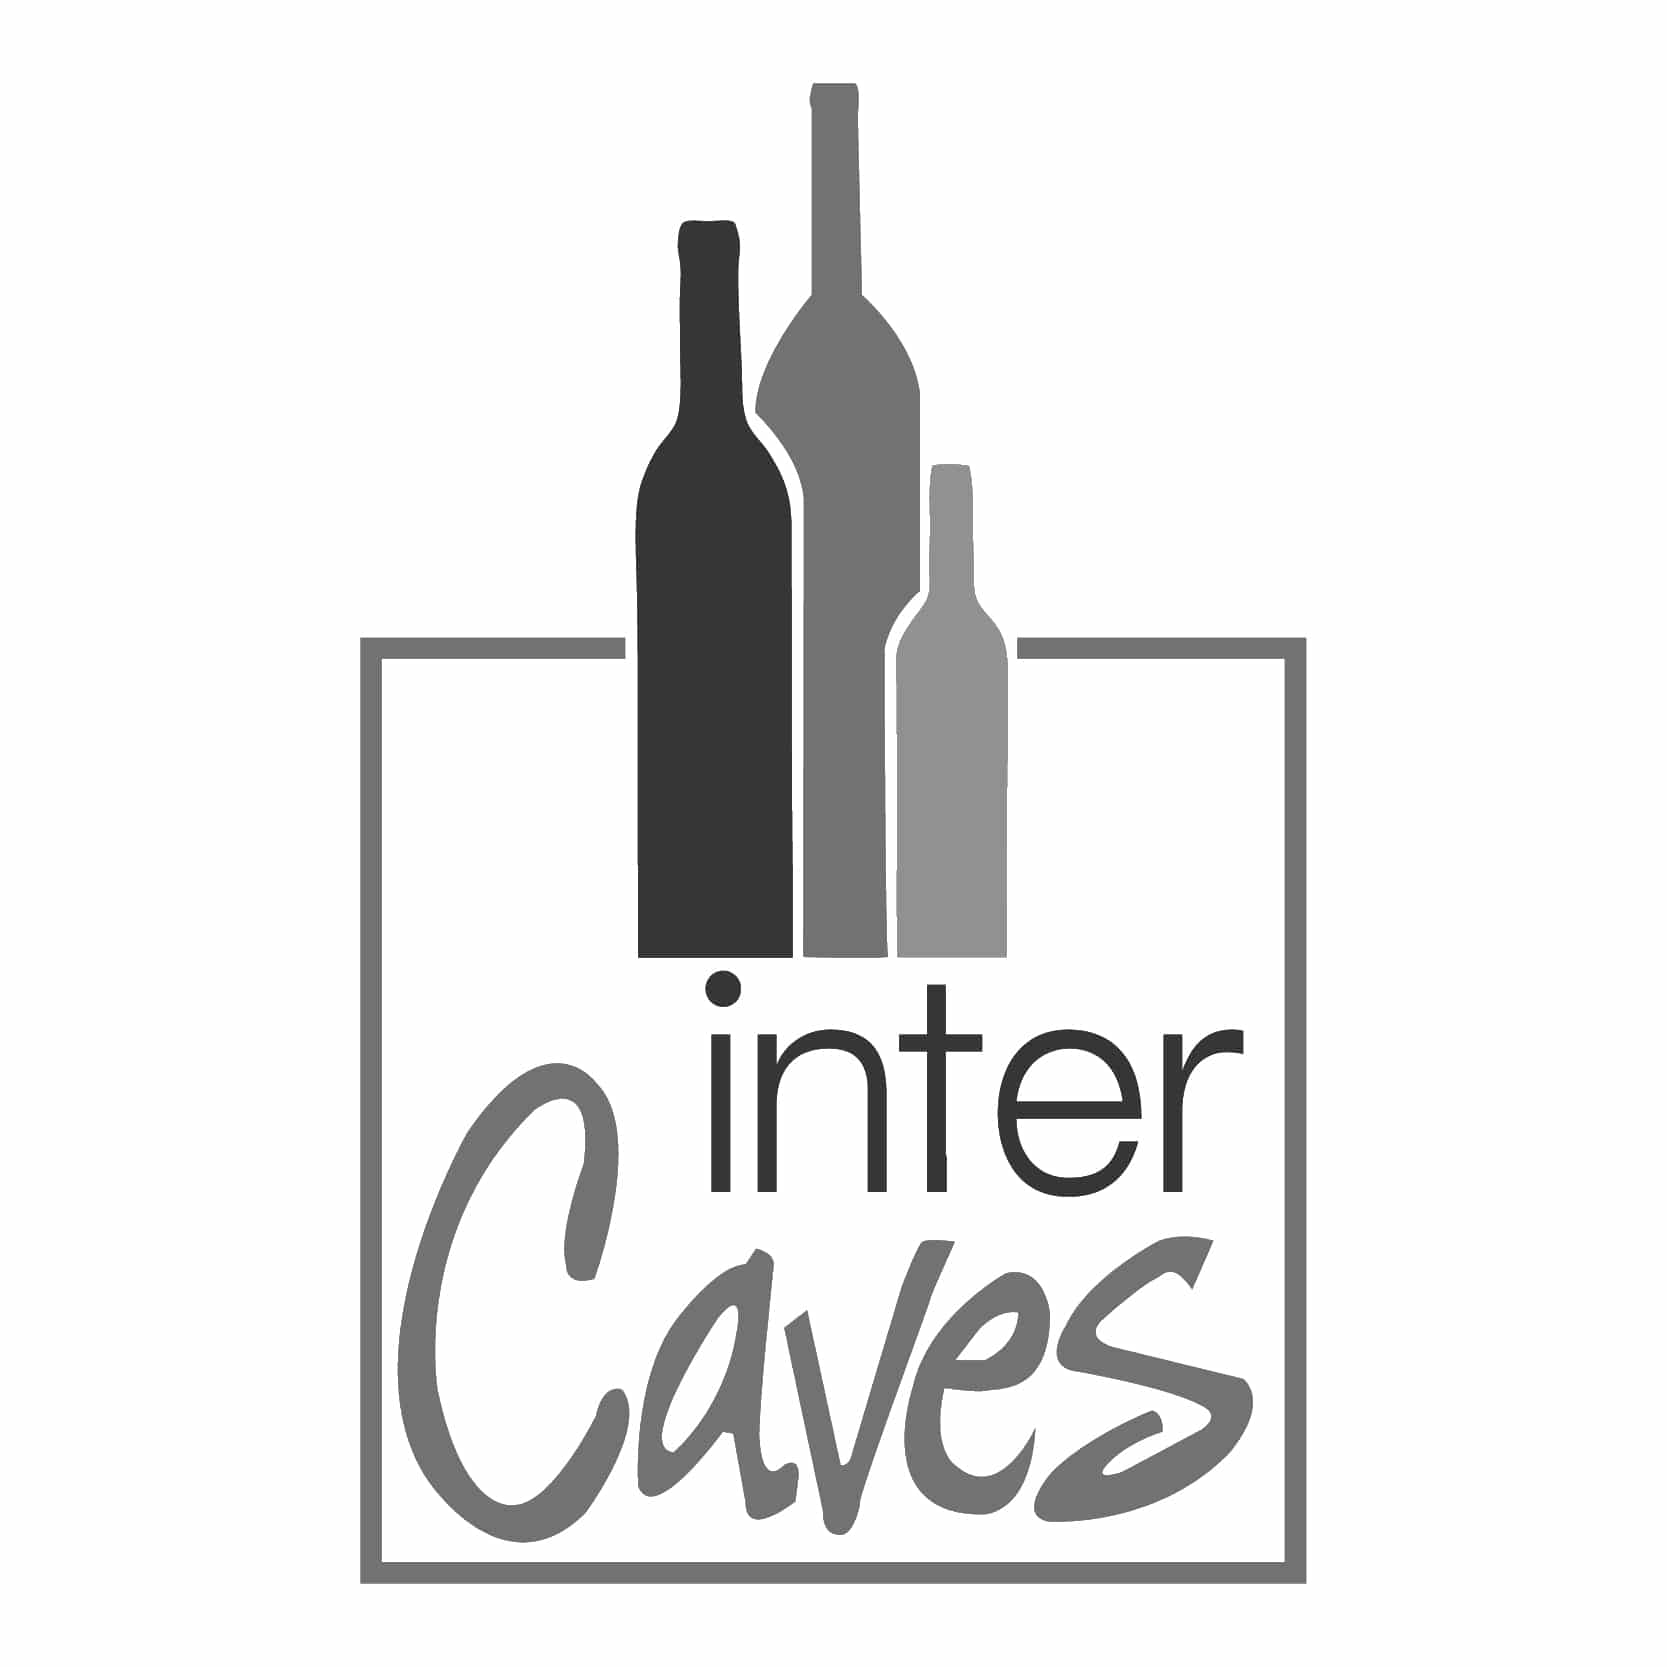 InterCaves